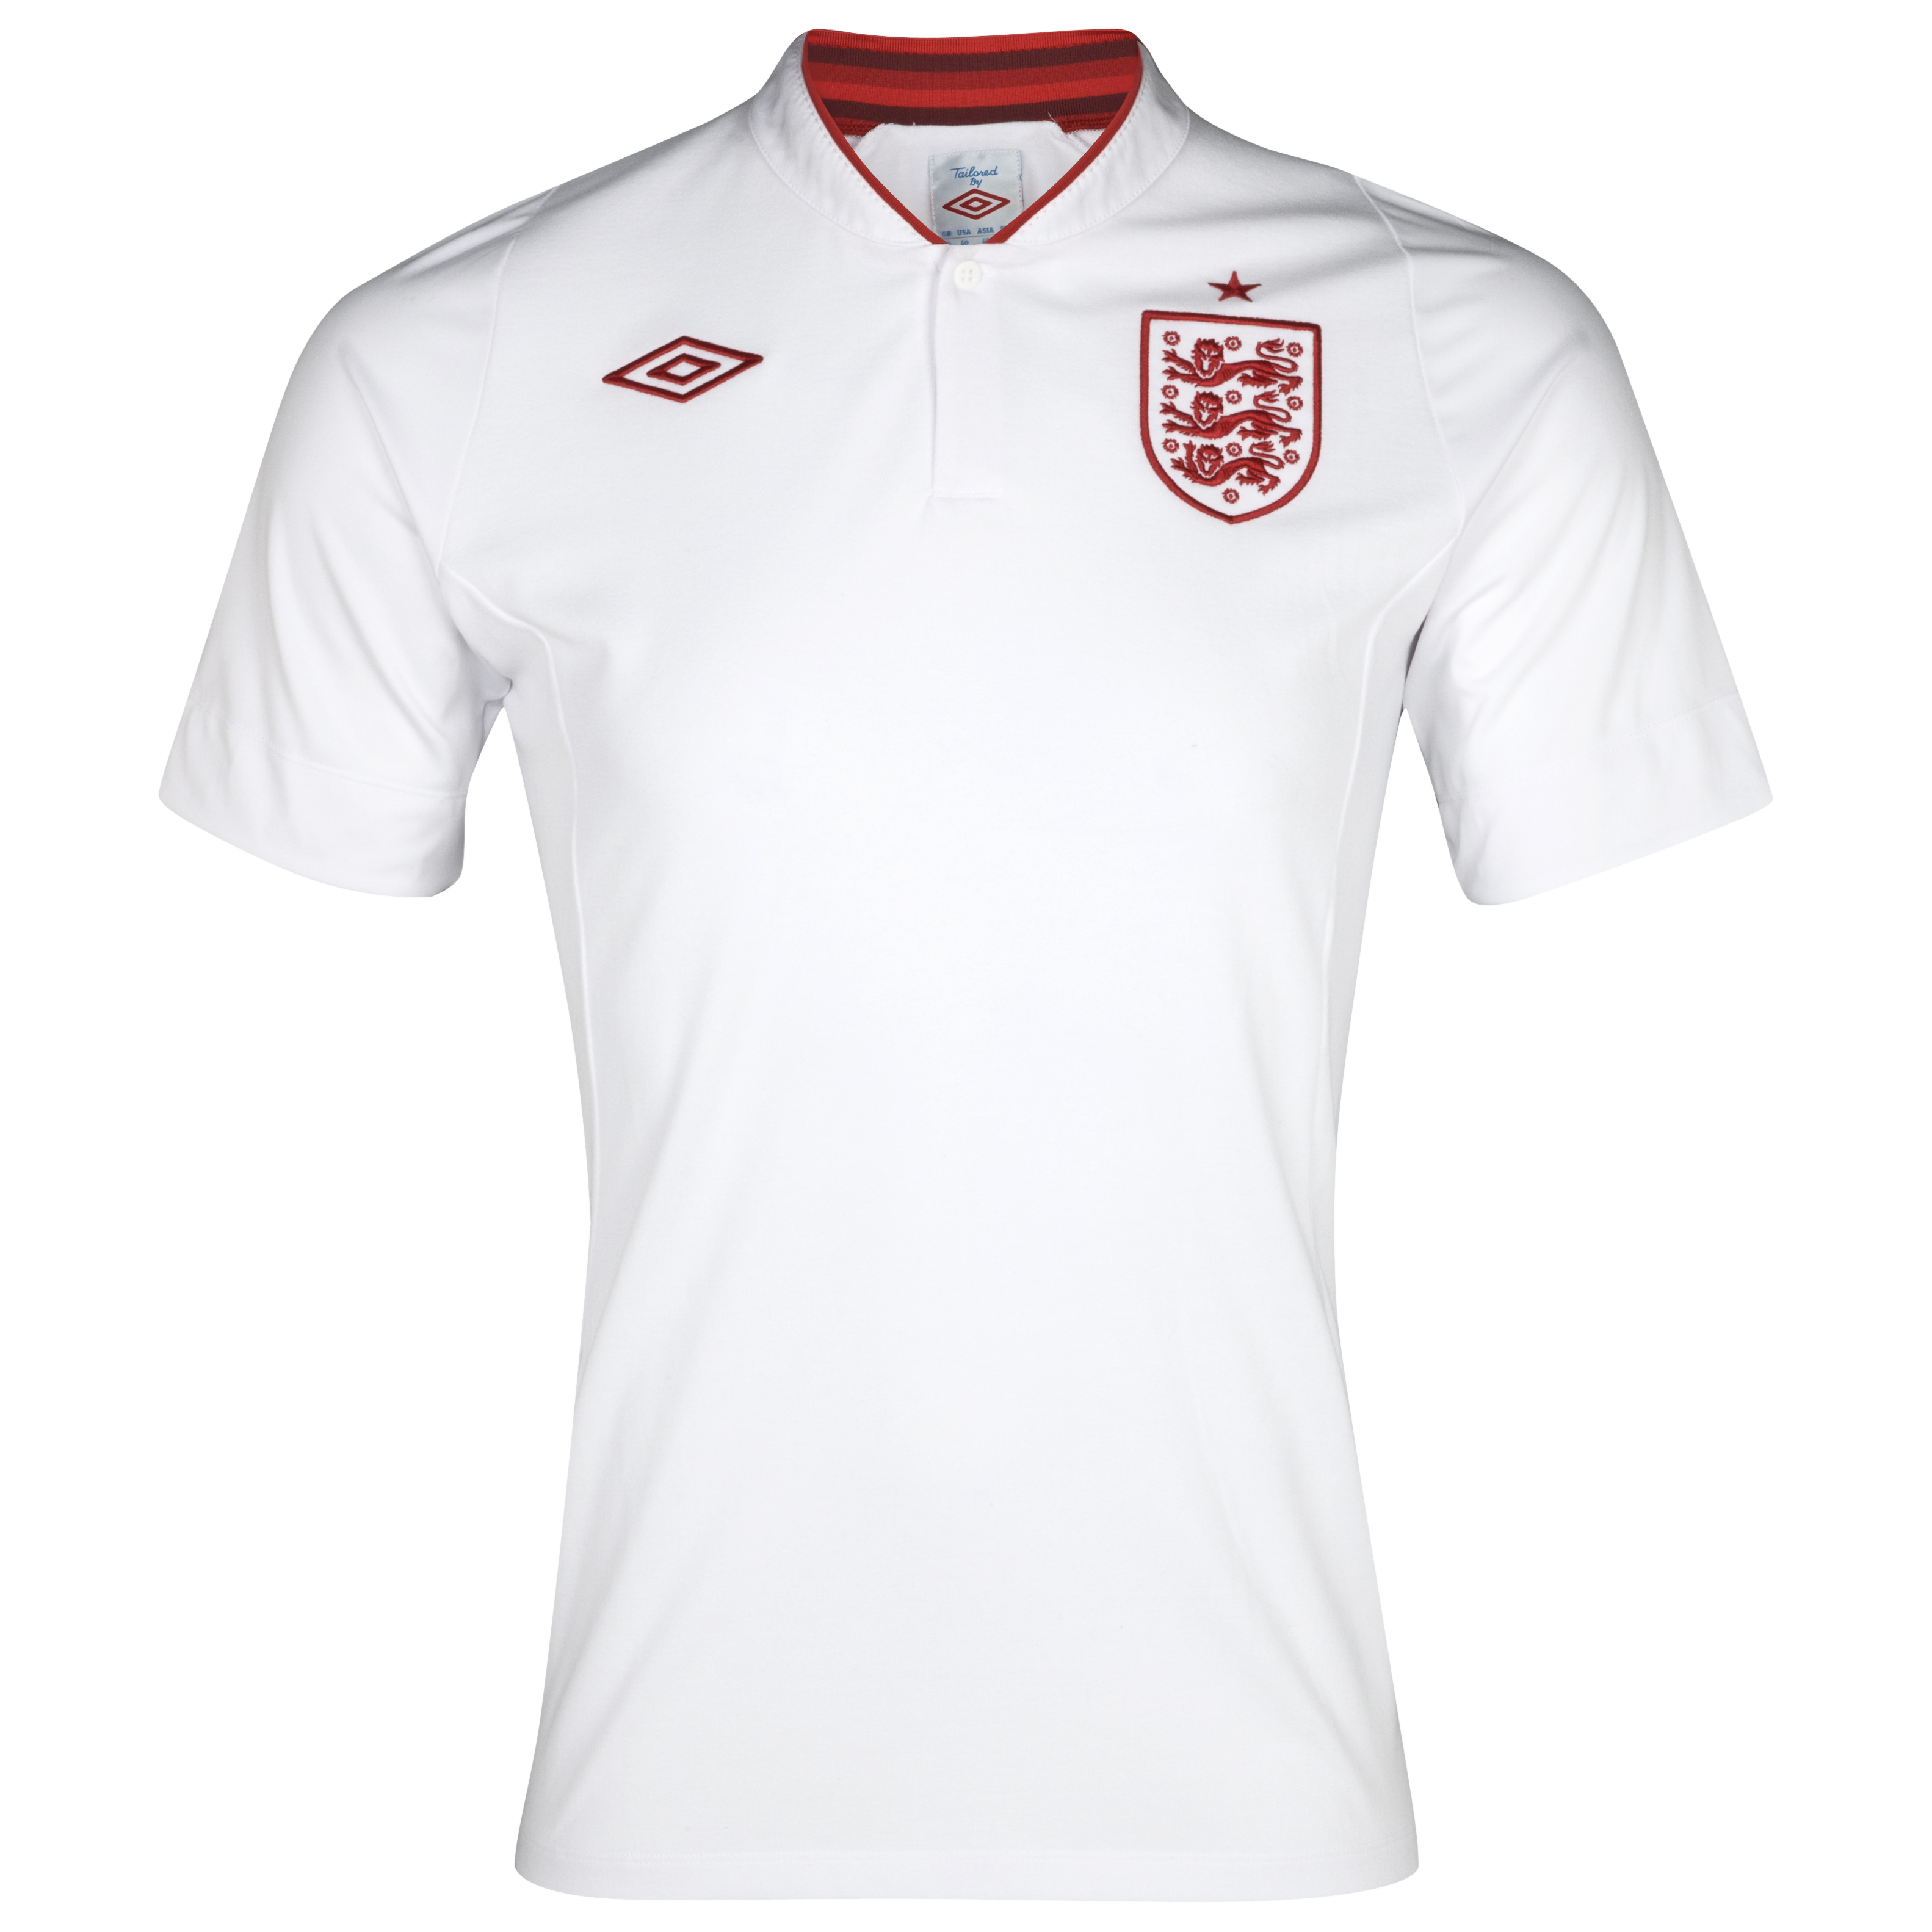 England Home Shirt 2012/13 - Boys